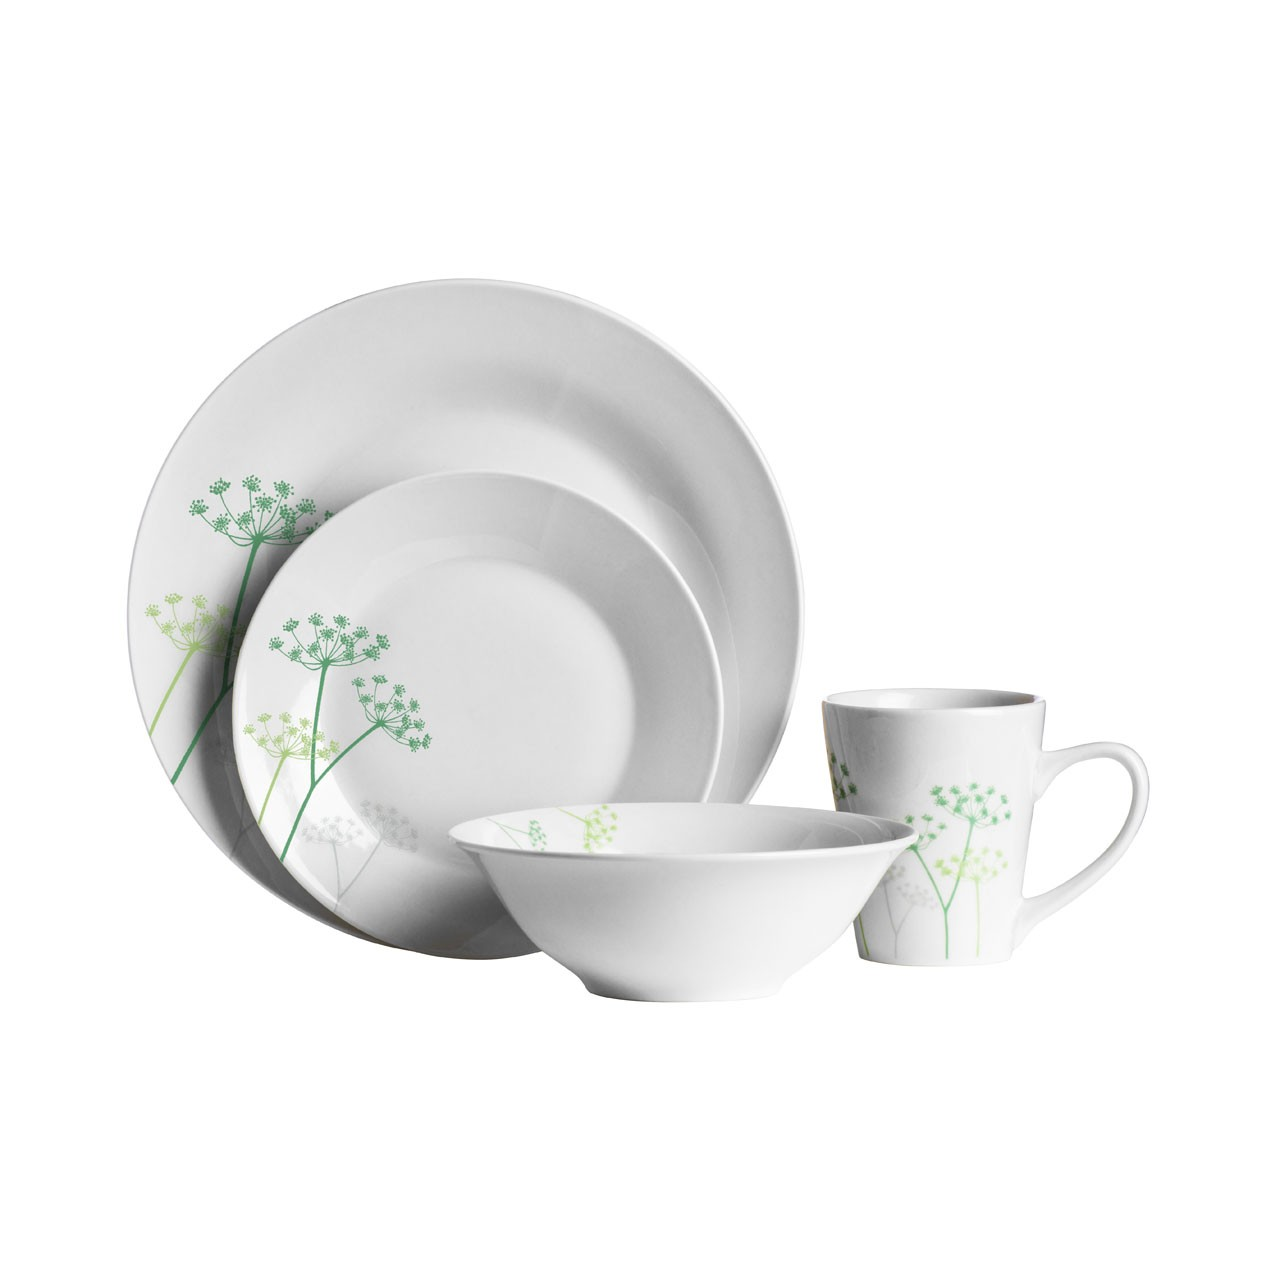 16 Piece Cow Parsley Porcelain Dinner Set